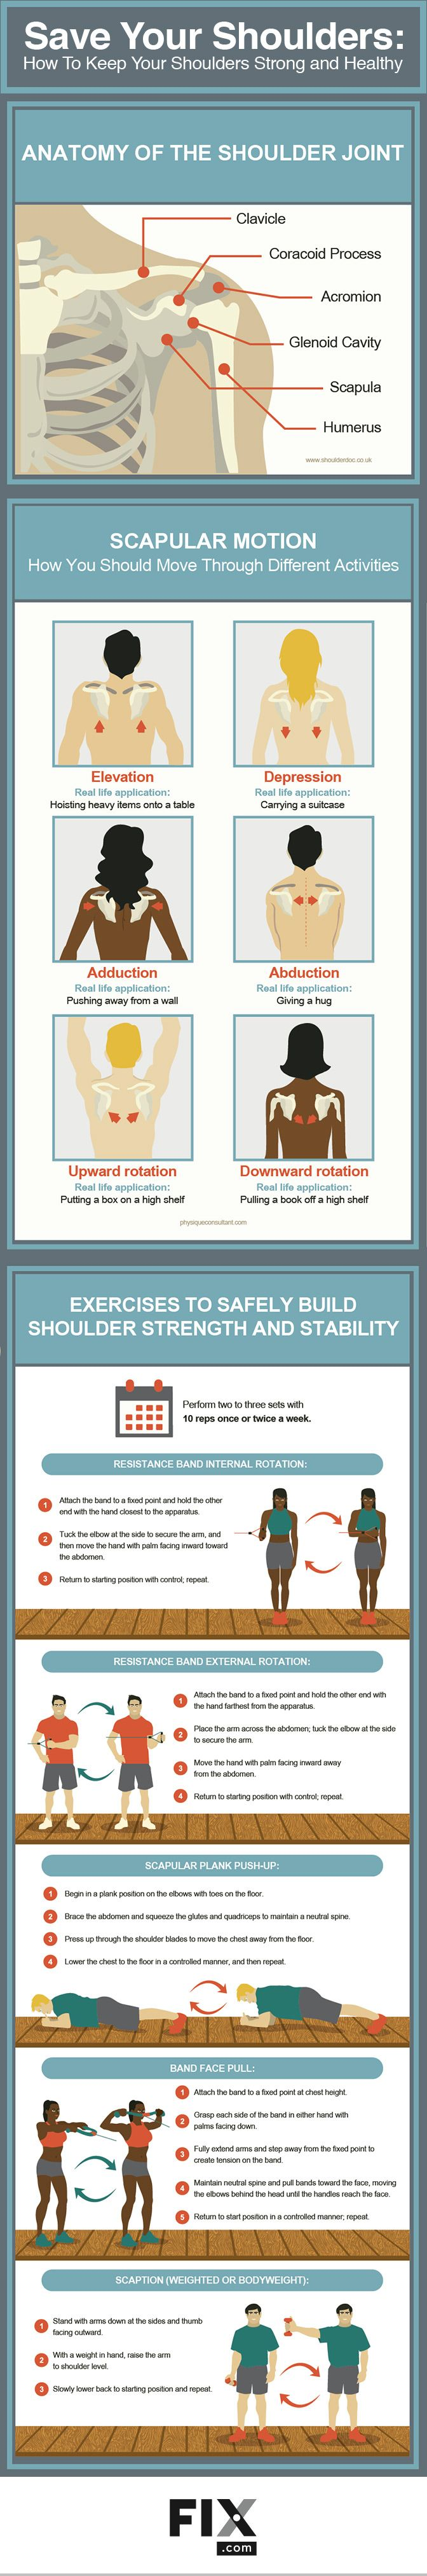 Save Your Shoulders: How To Keep Your Shoulders Strong and ...